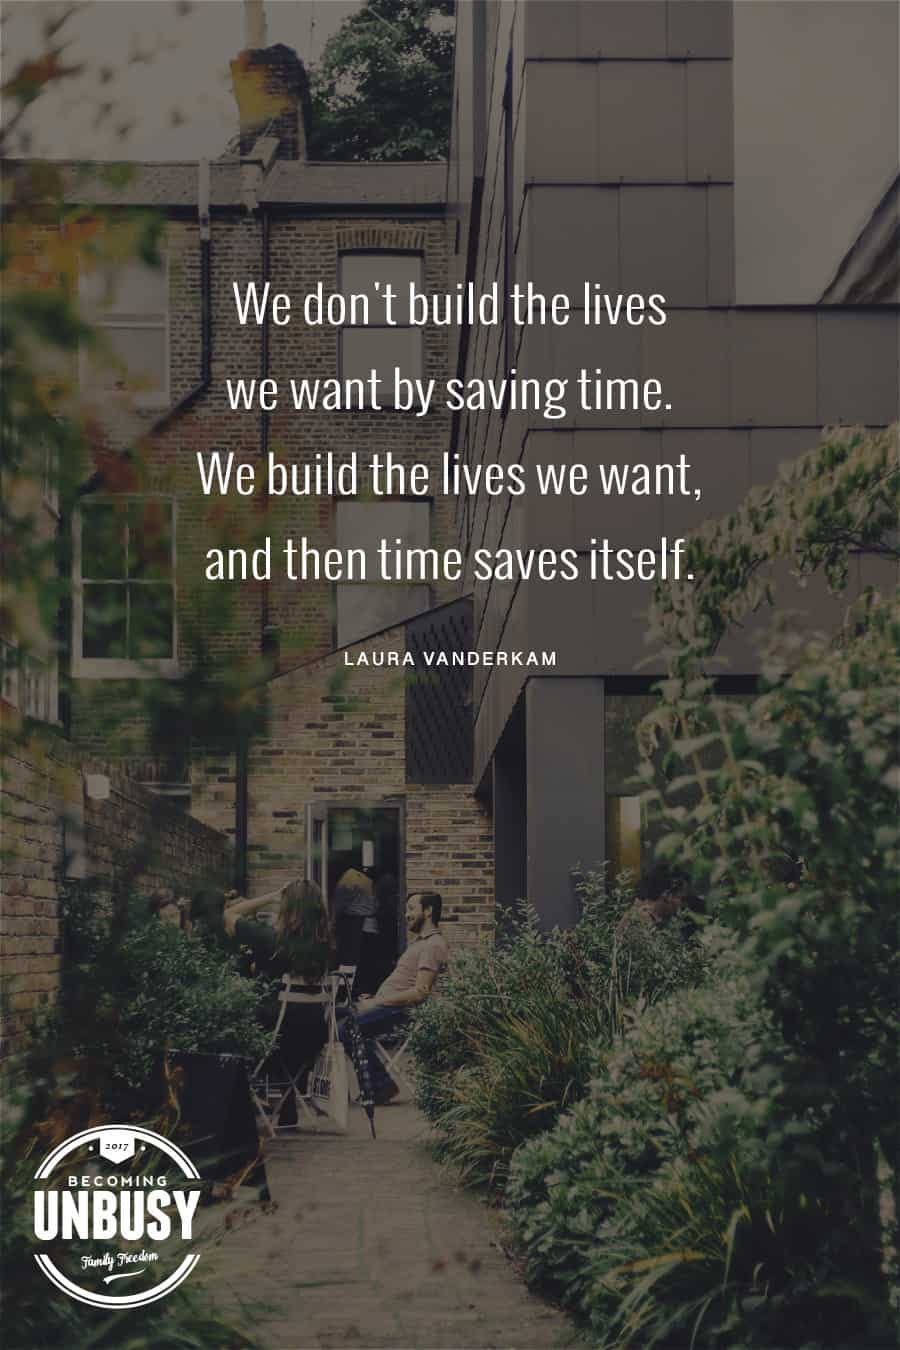 We don't build our lives by saving time. We build the lives we want, and then time saves itself. -- 10 inspirational quotes about life that will help you focus on what's important #quotes #lifequotes #inspirationalquotes *Loving this collection of life quotes!